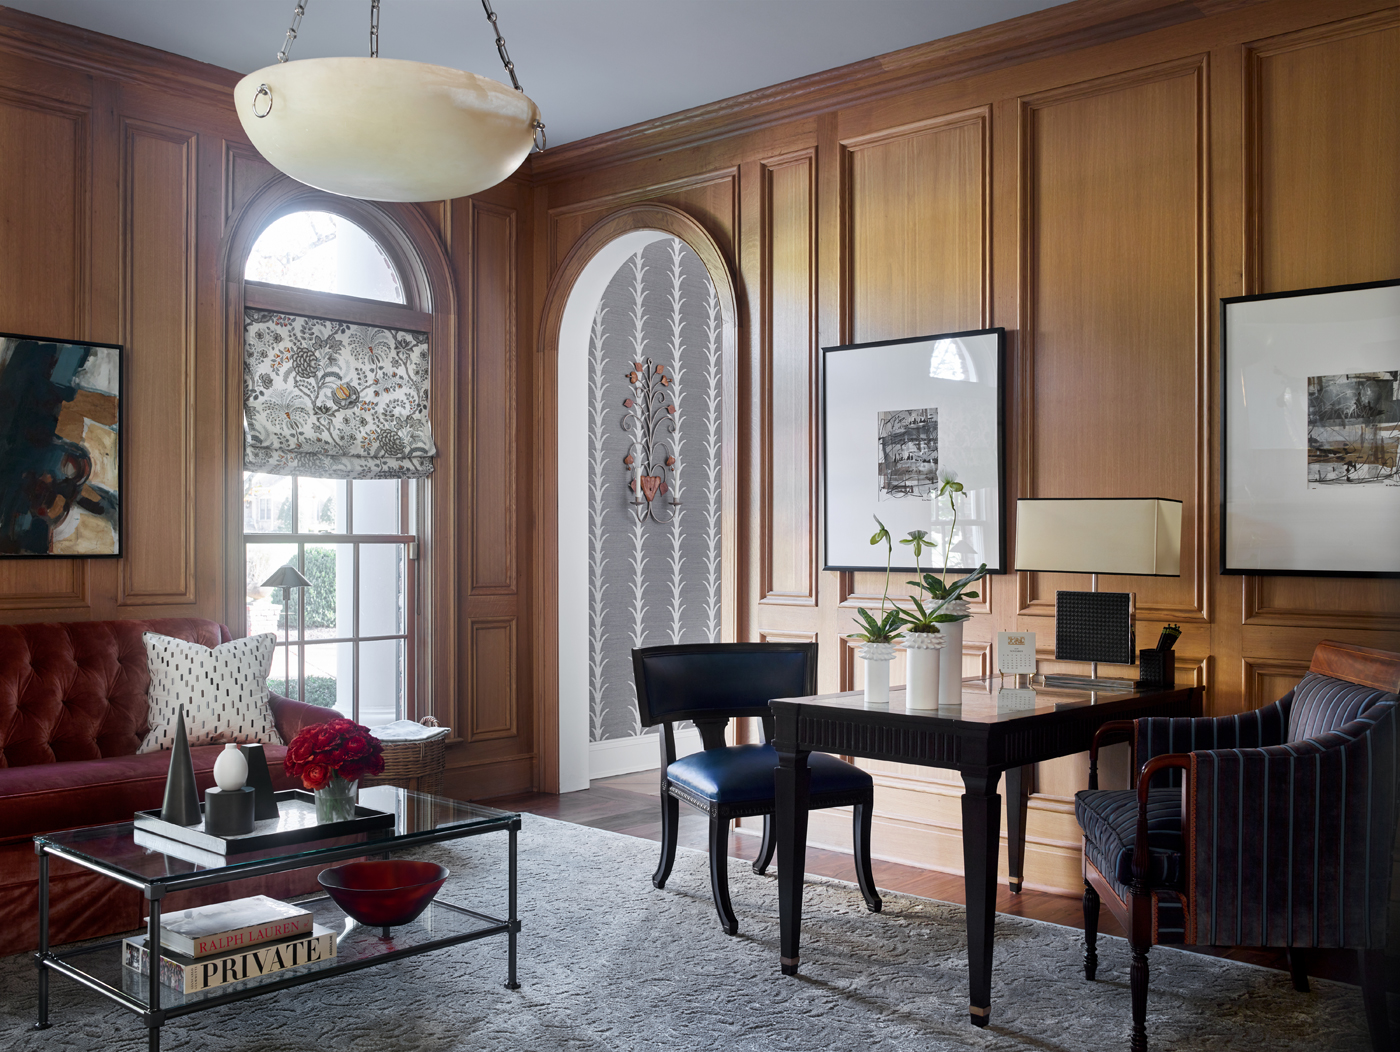 Library paneled in quarter-sawn white oak; Hickory Chair Marler sofa, table, and chairs | Savage Interior Design